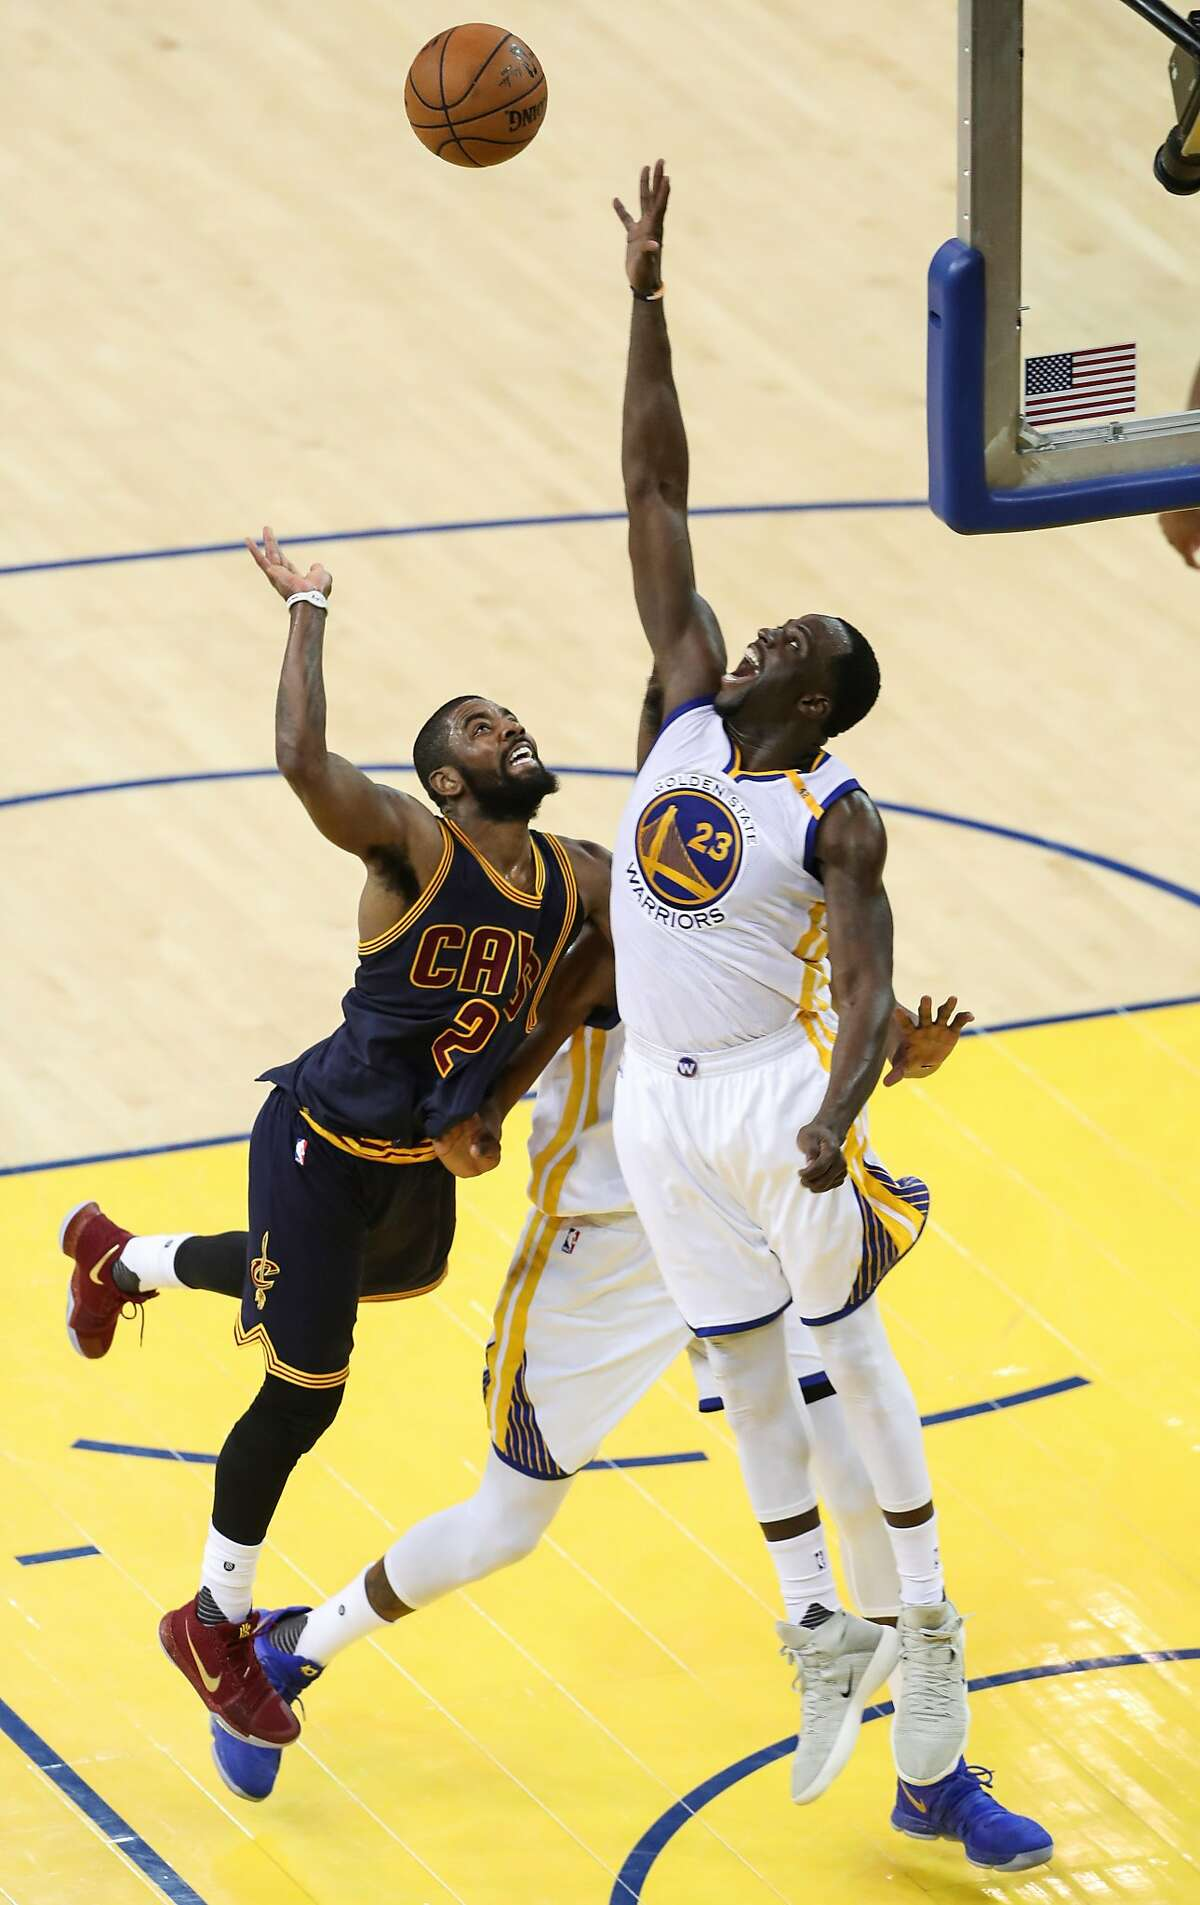 Golden State Warriors' Draymond Green defends against Cleveland Cavaliers' Kyrie Irving in the third quarter during Game 1 of the 2017 NBA Finals at Oracle Arena on Thursday, June 1, 2017 in Oakland, Calif.